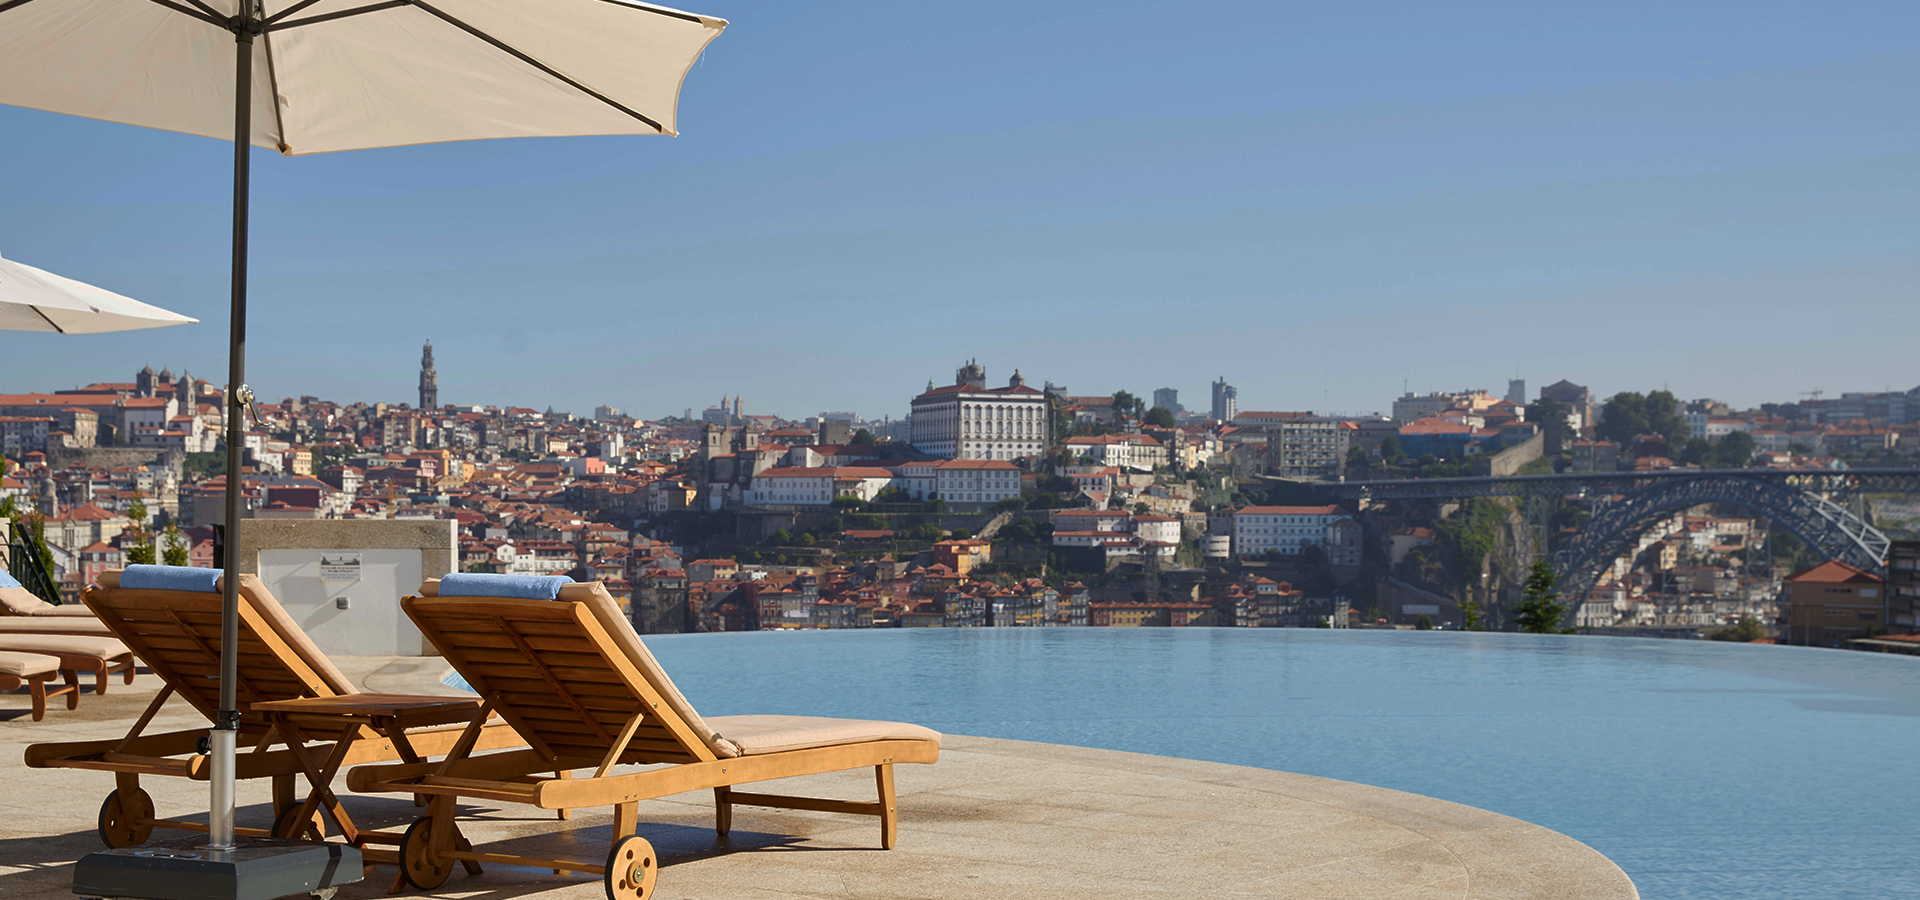 View of Porto, Portugal from The Yeatman